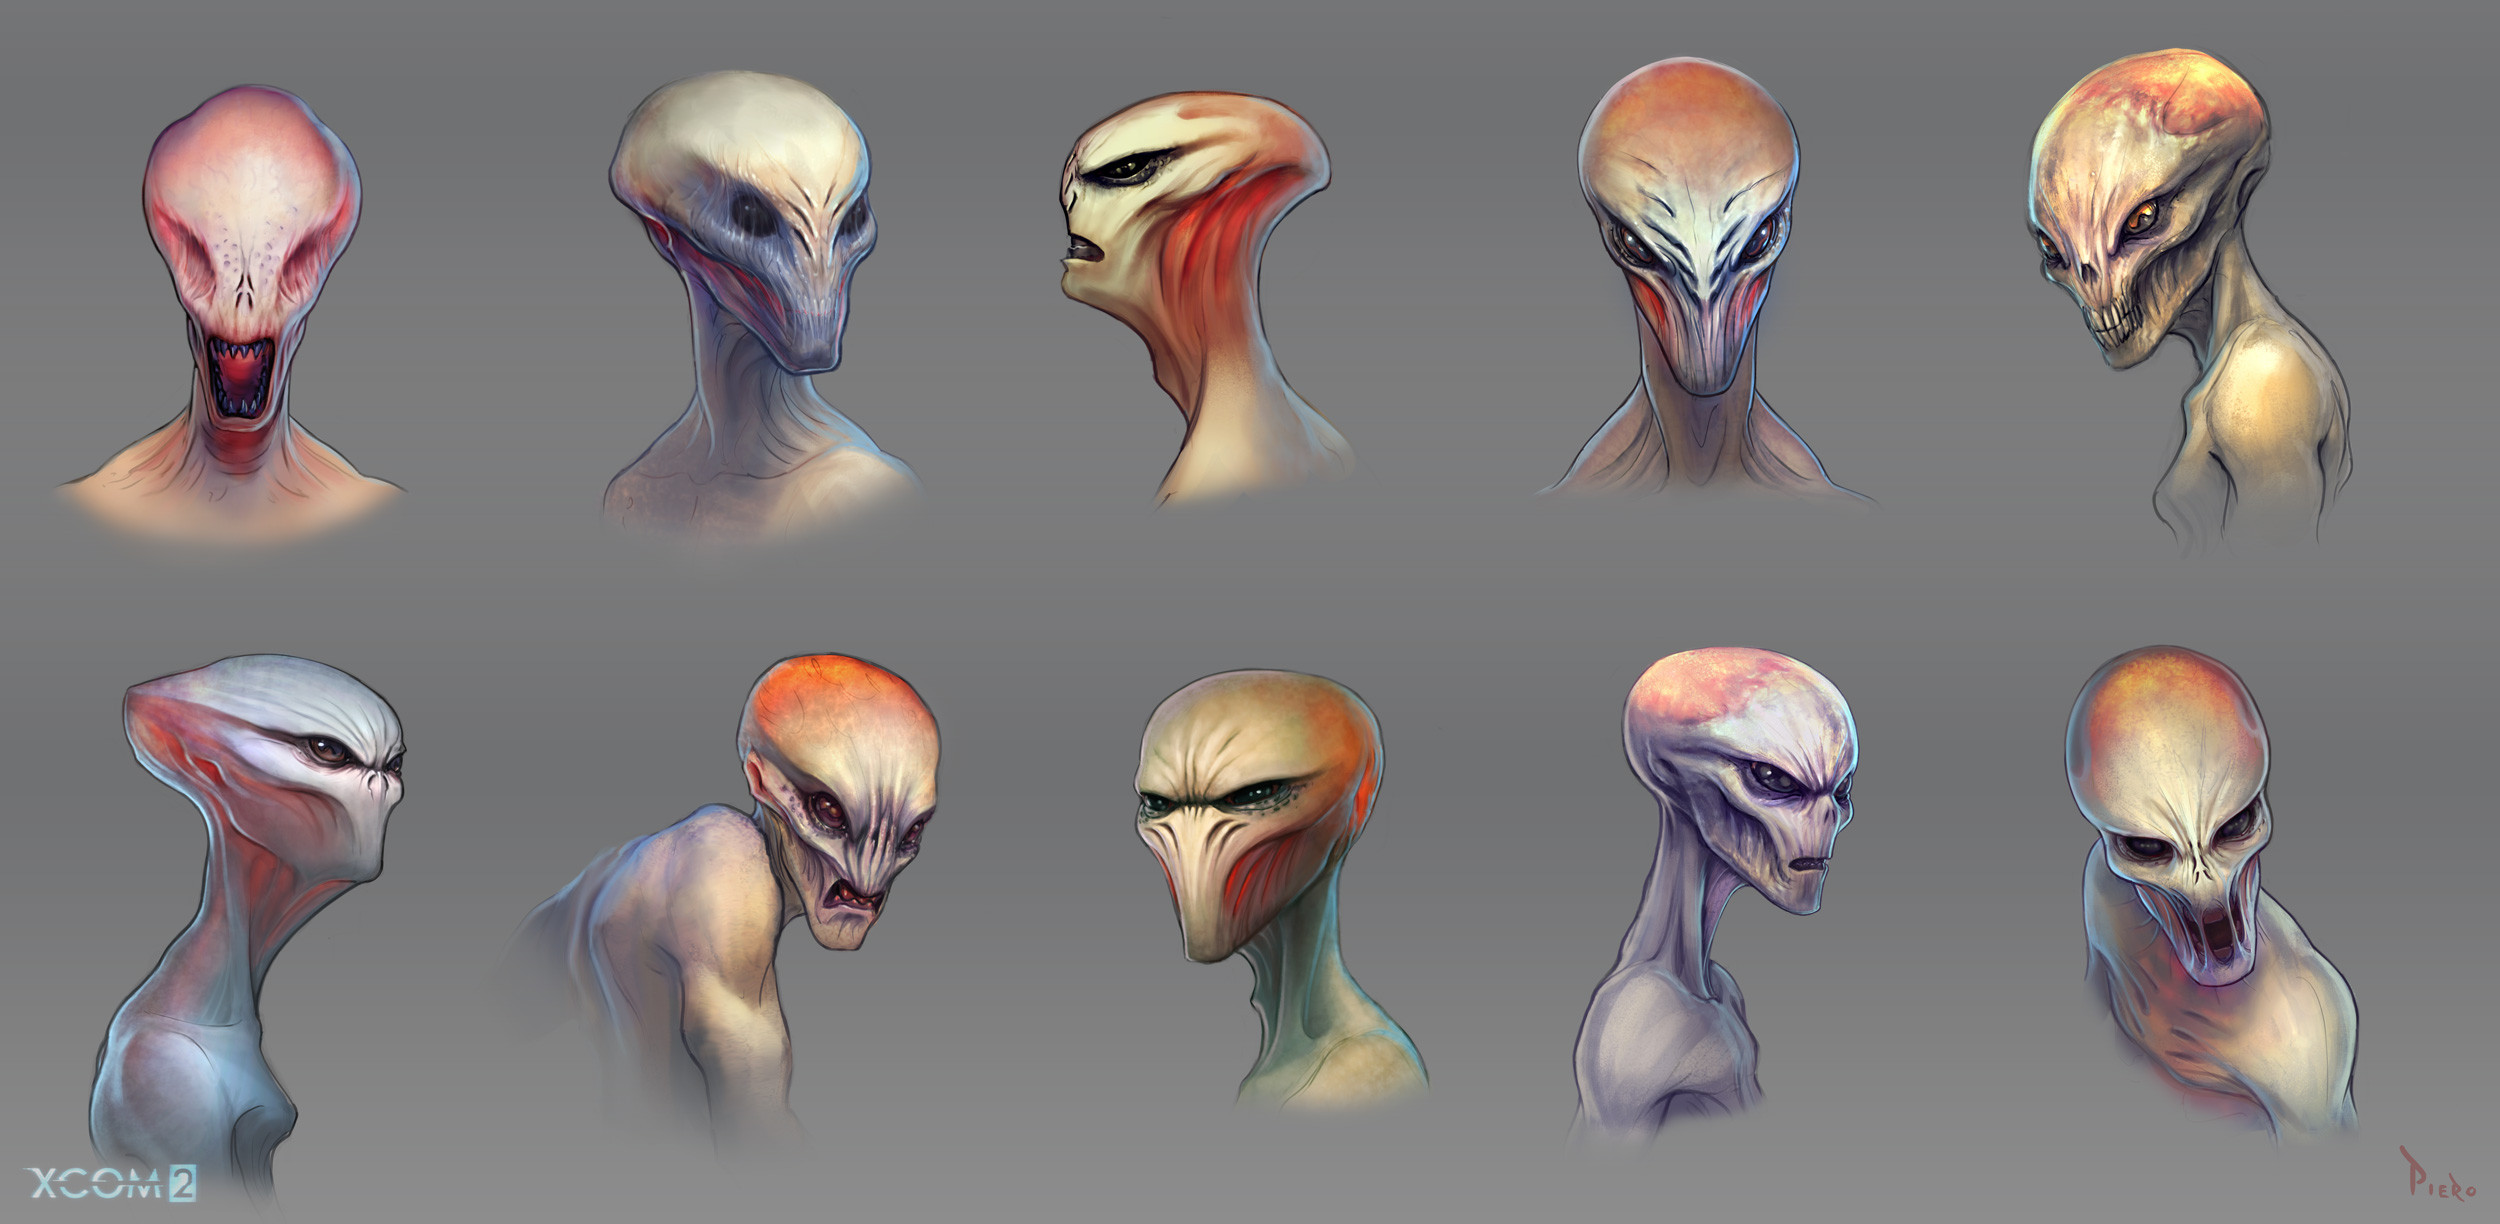 Head explorations